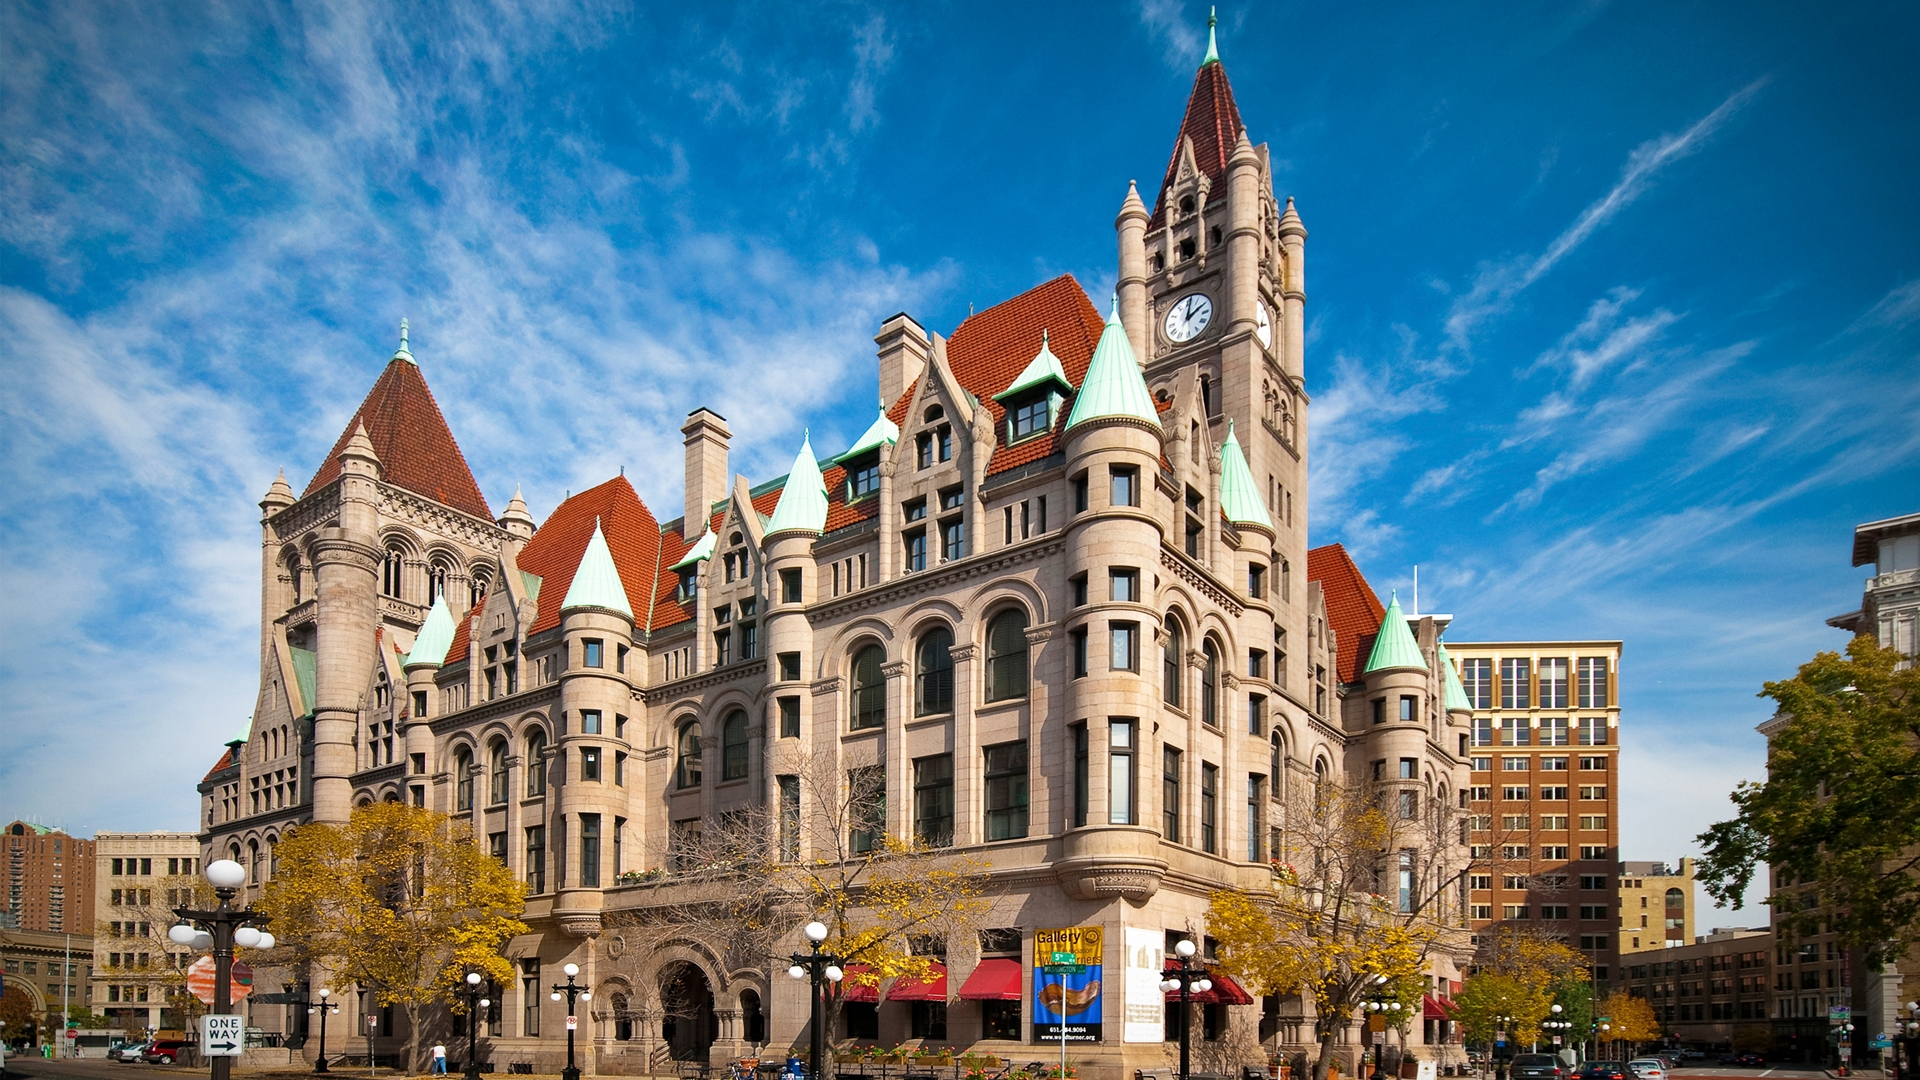 Visit Saint Paul's castle, Landmark Center, in the heart of downtown next to Rice Park.